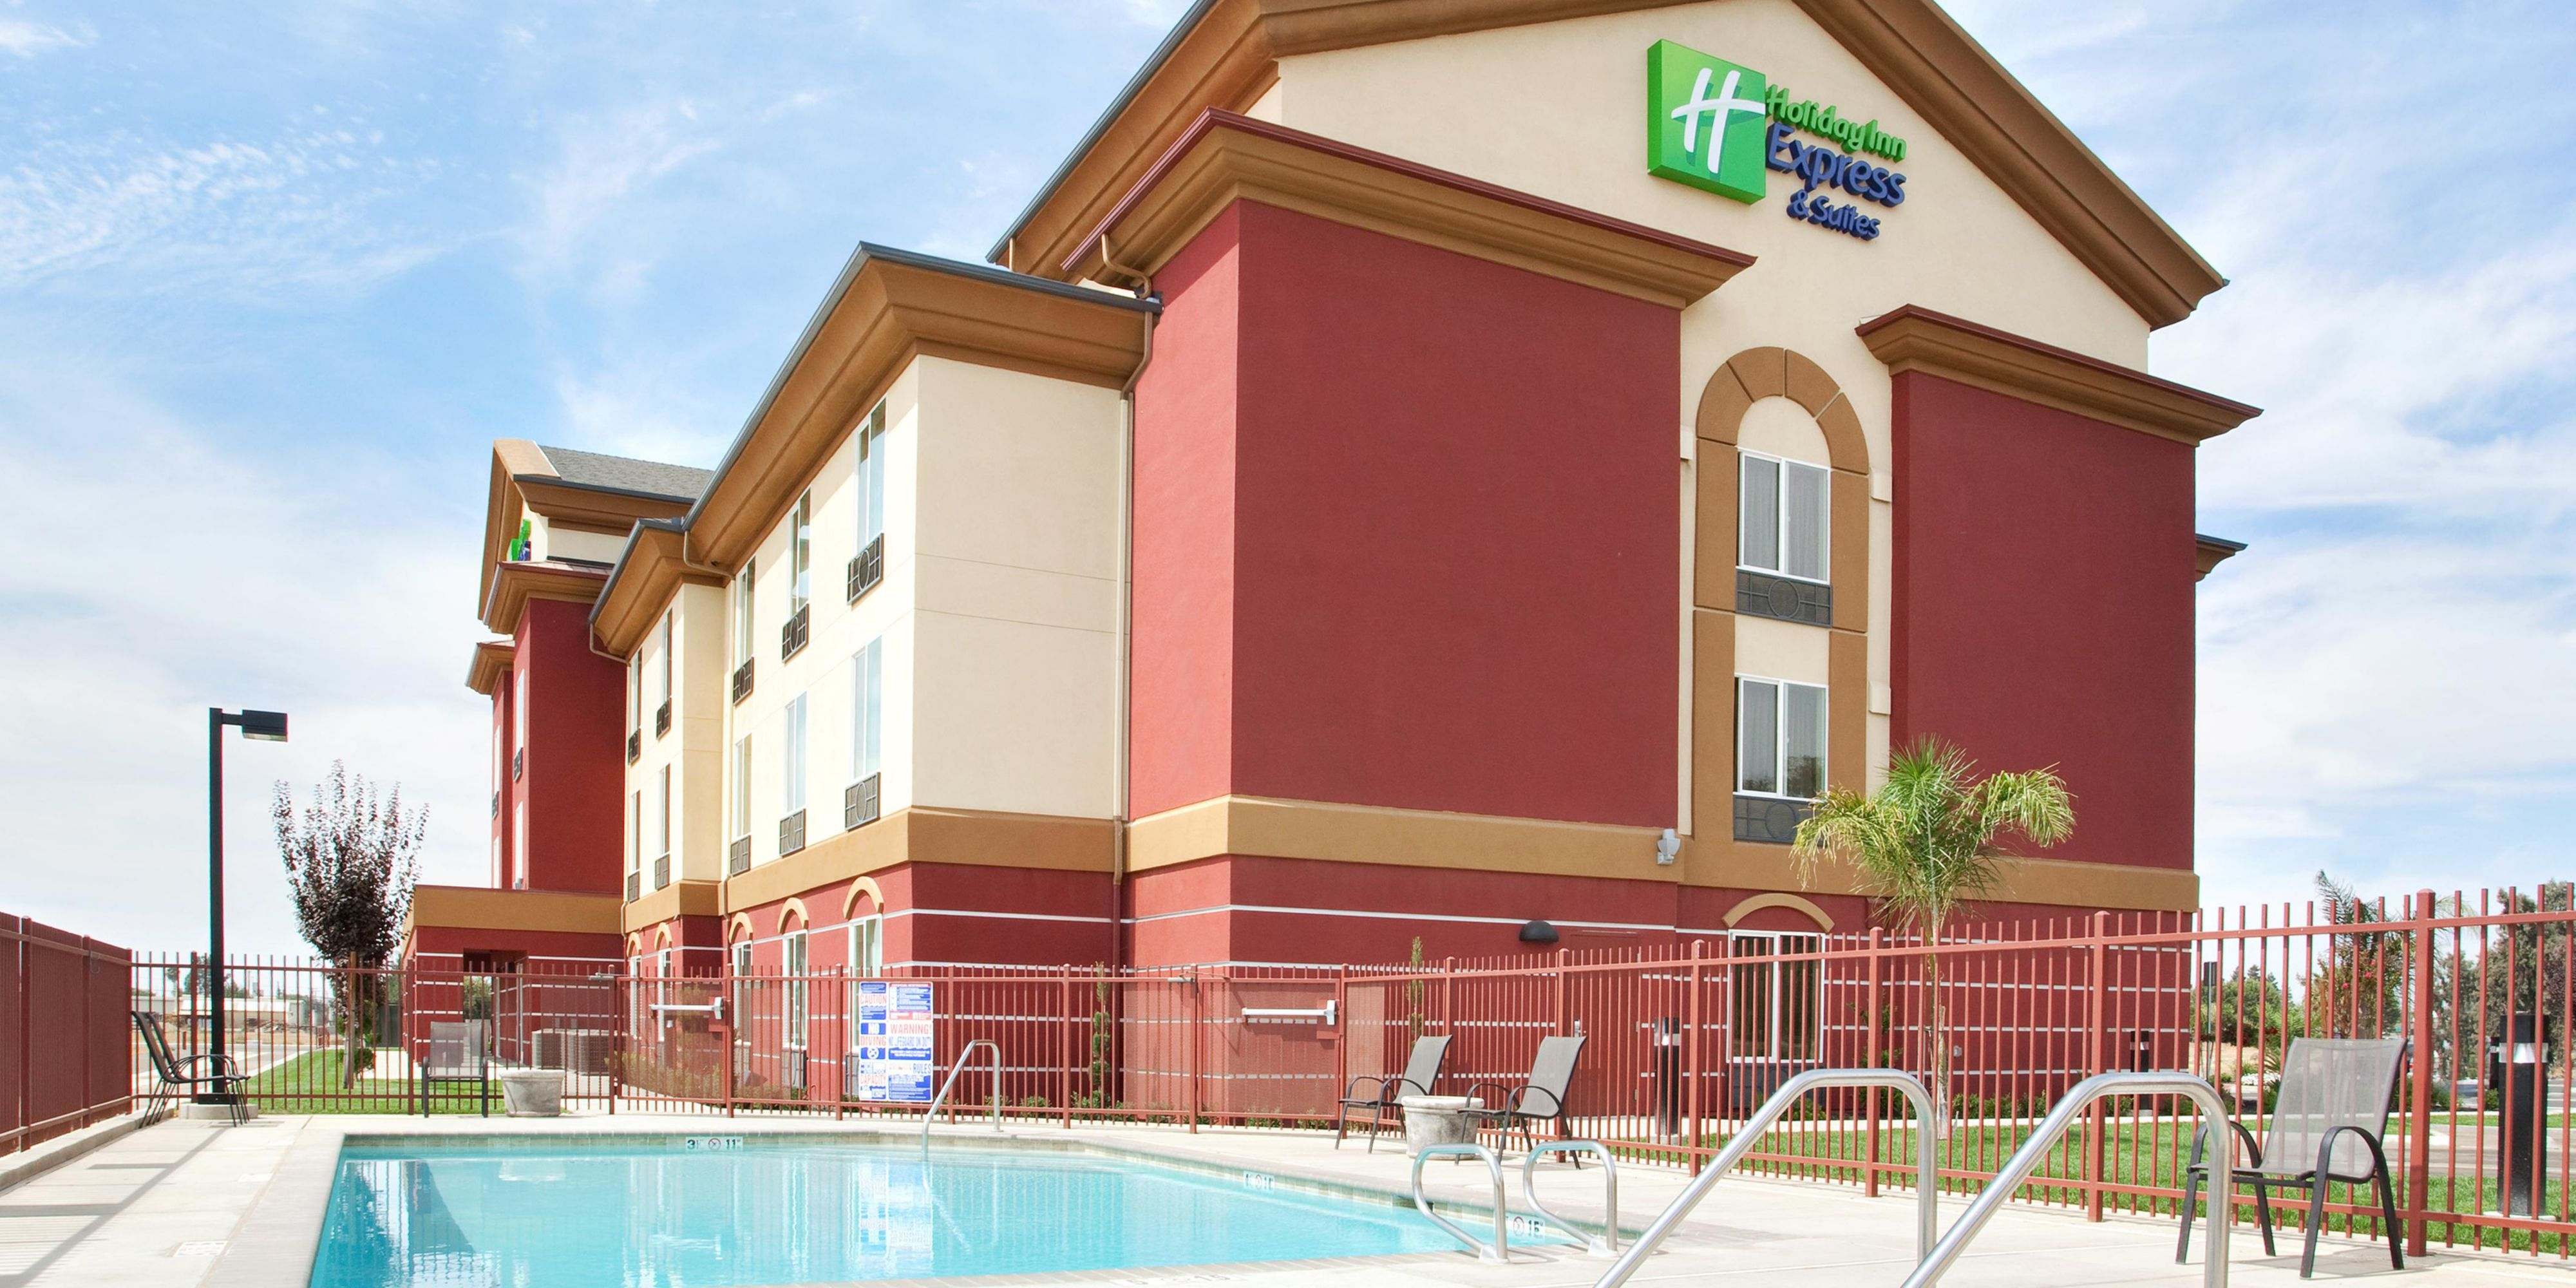 Holiday Inn Express And Suites Chowchilla 2532180027 2x1